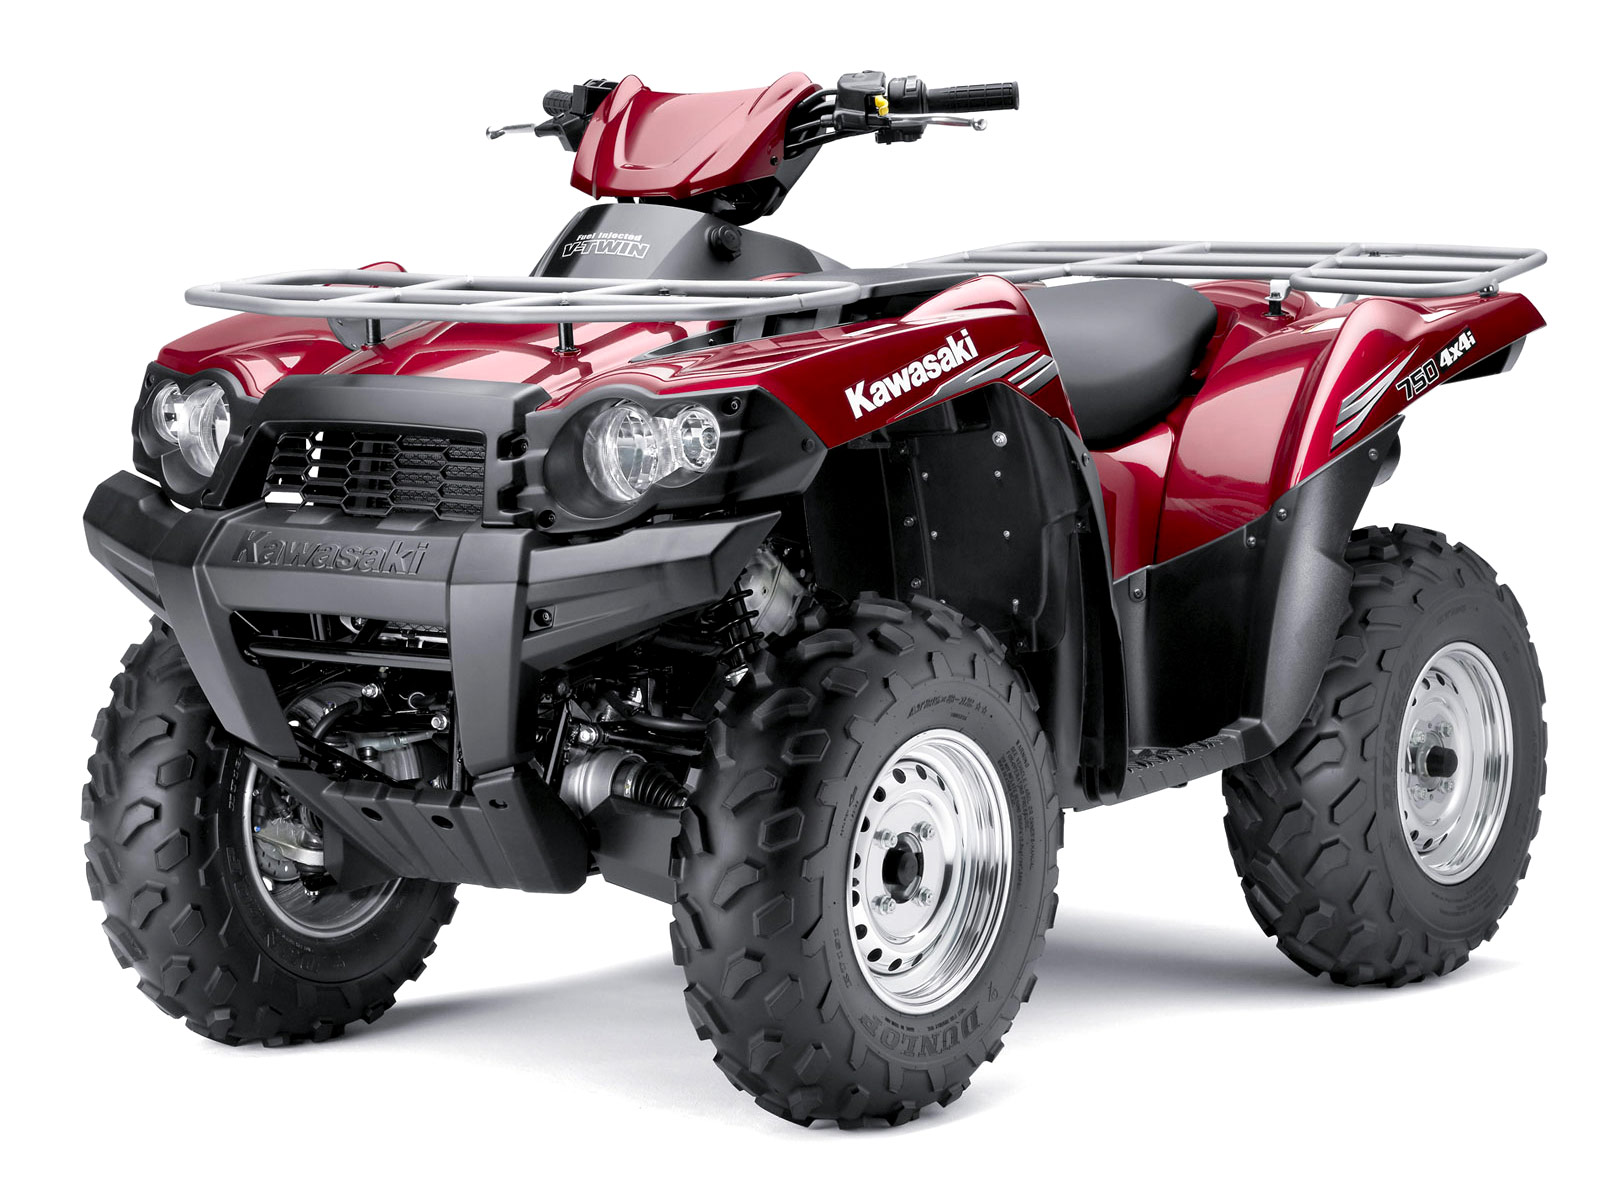 2011 kawasaki brute force 750 4x4i atv wallpapers. Black Bedroom Furniture Sets. Home Design Ideas